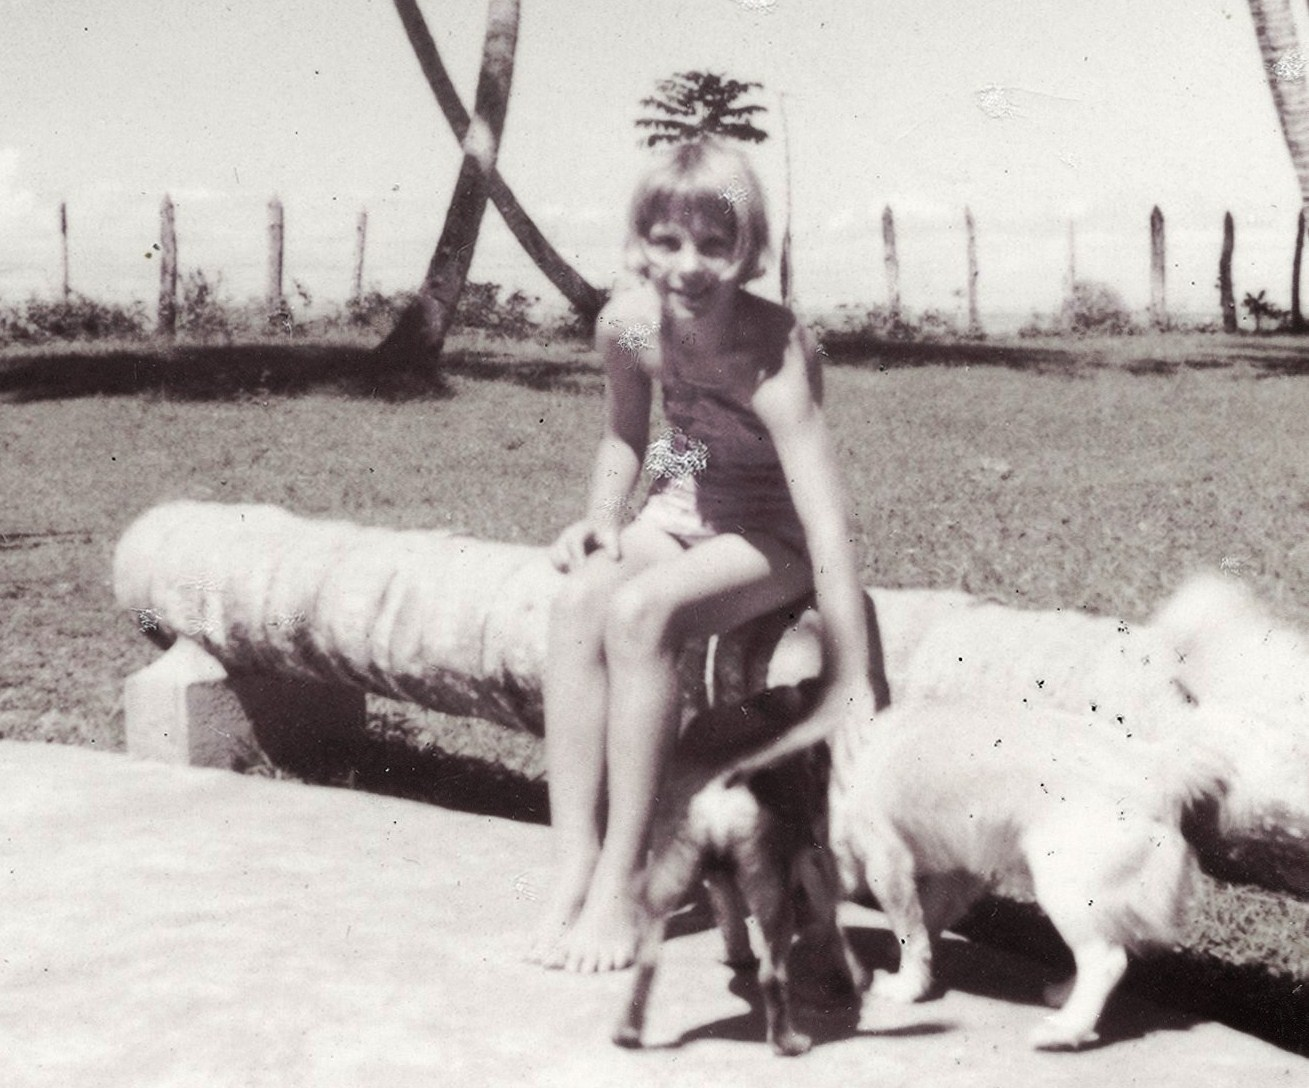 Rita with Bobby and another dog